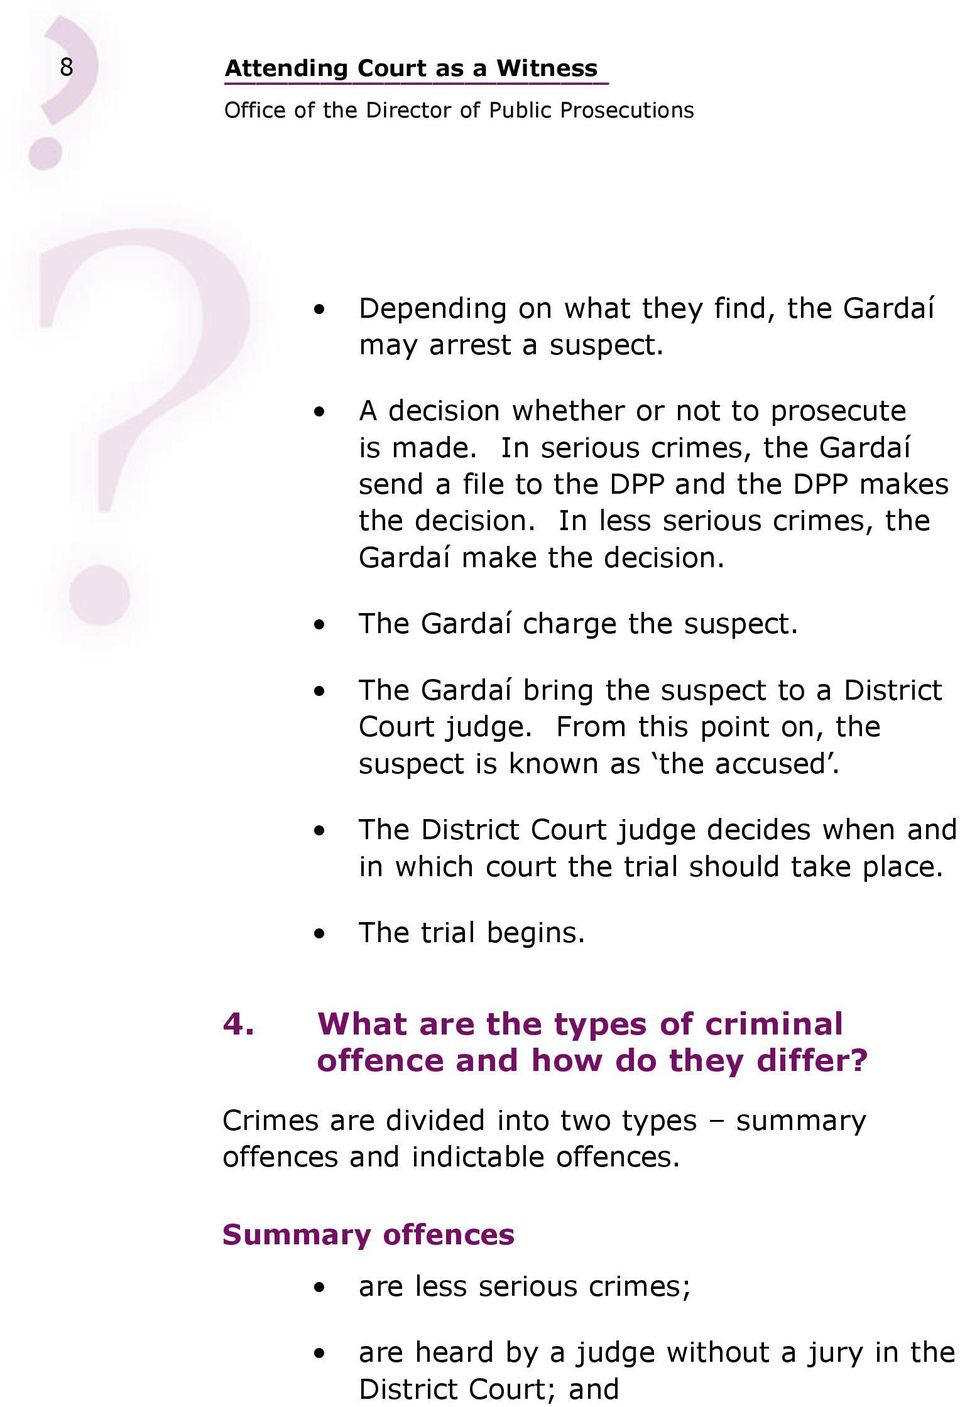 The Gardaí bring the suspect to a District Court judge. From this point on, the suspect is known as the accused.